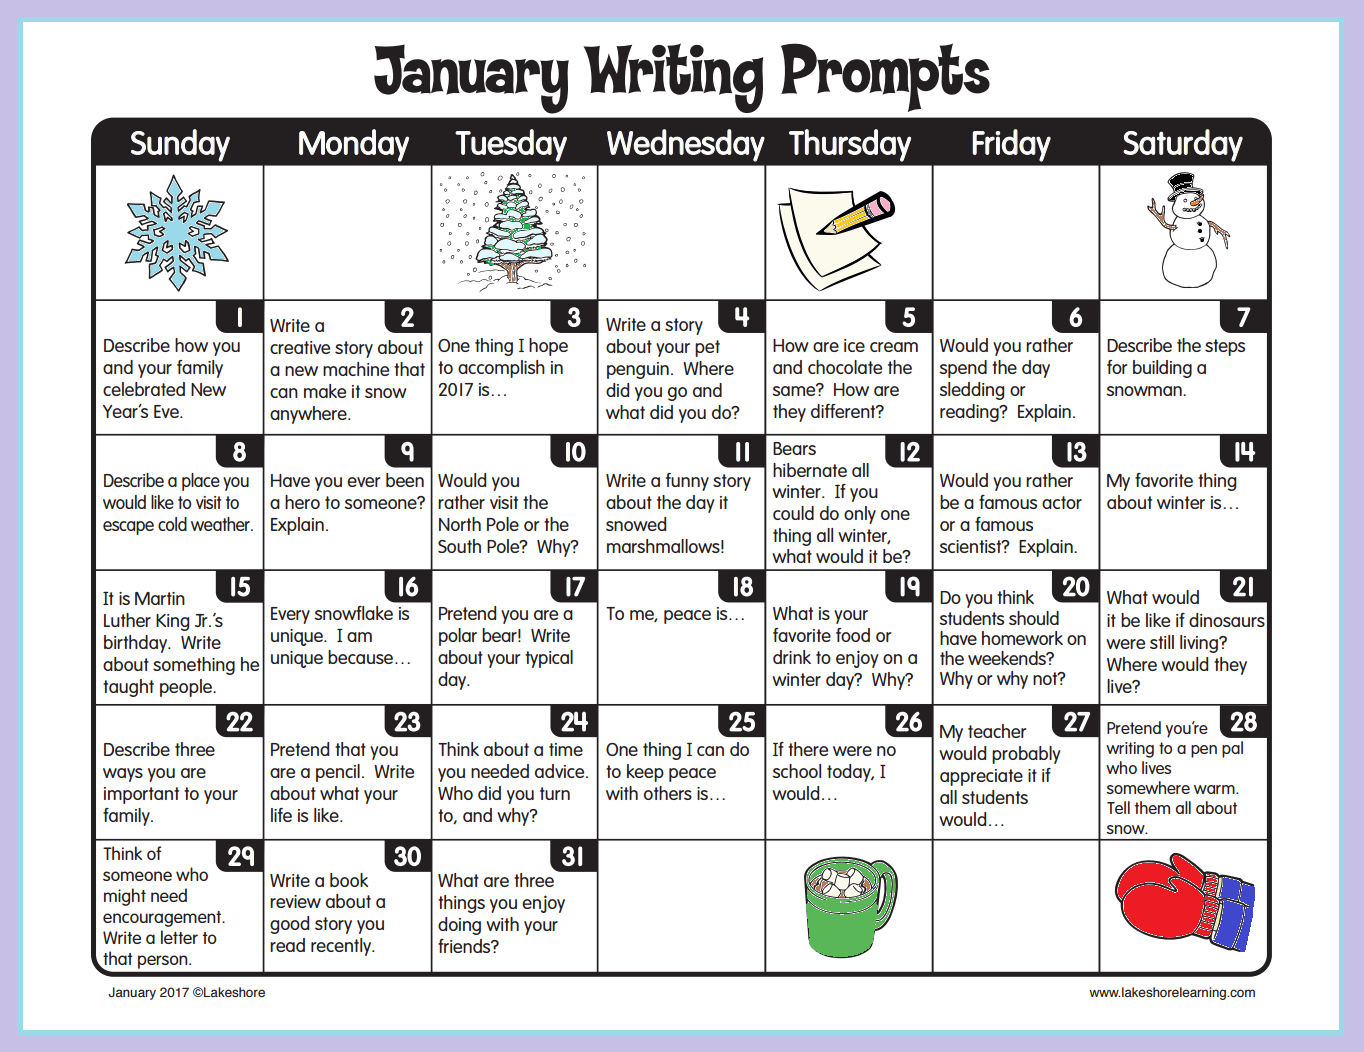 January Writing Prompts From Lakeshore Learning